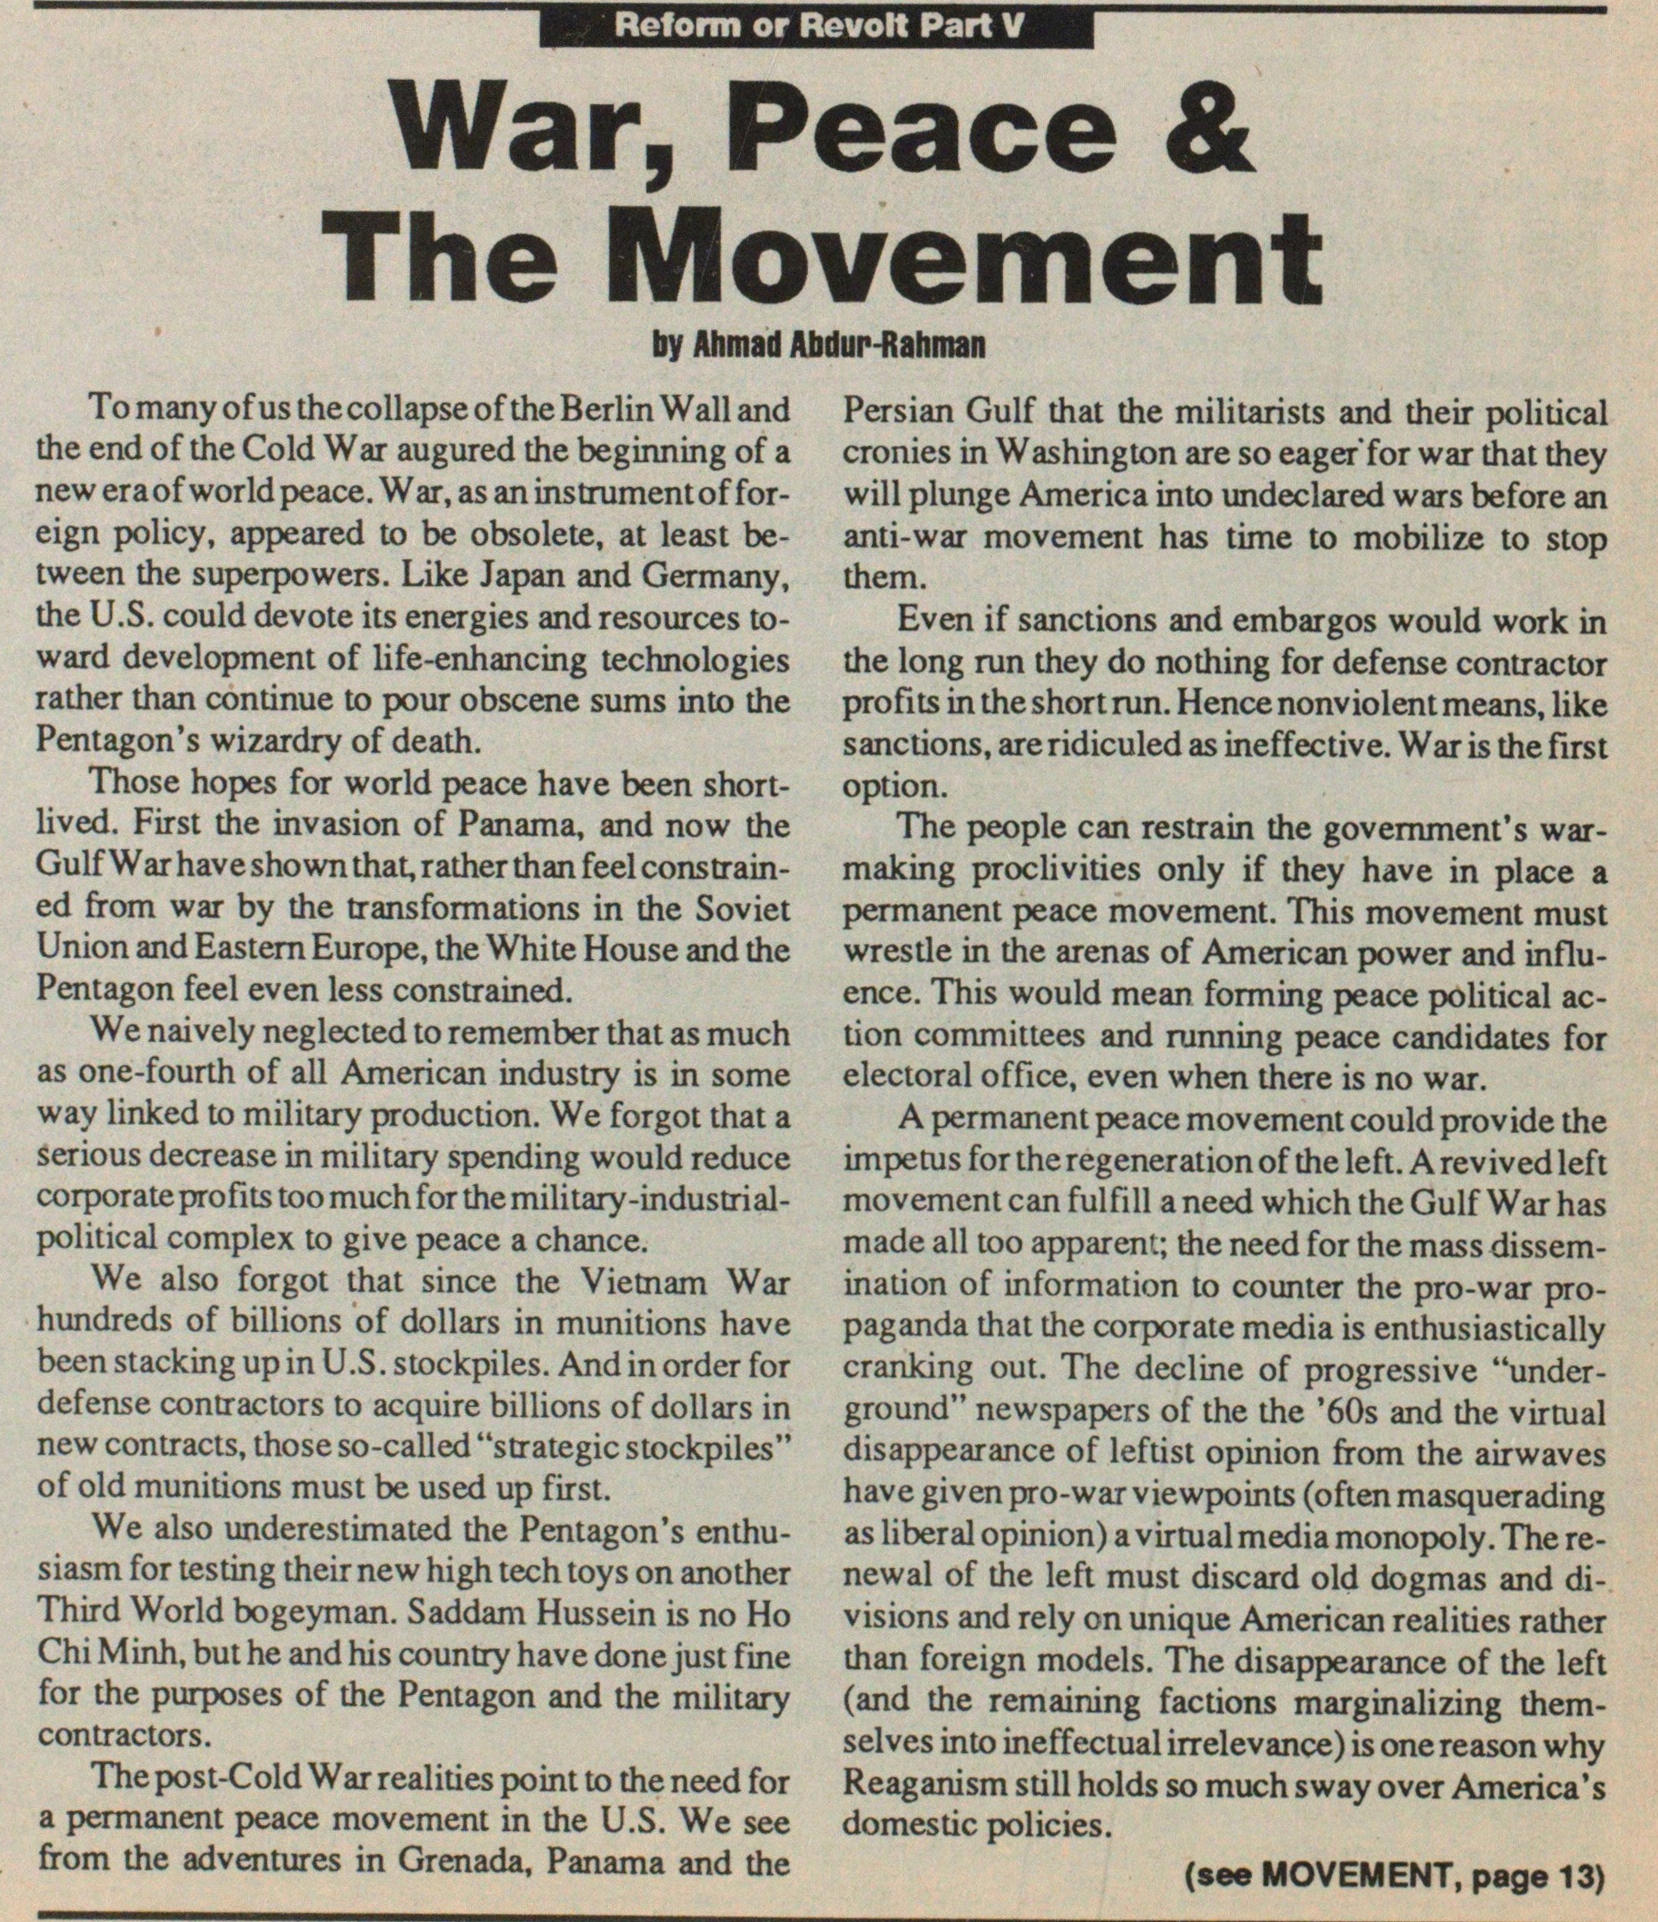 War, Peace & The Movement image